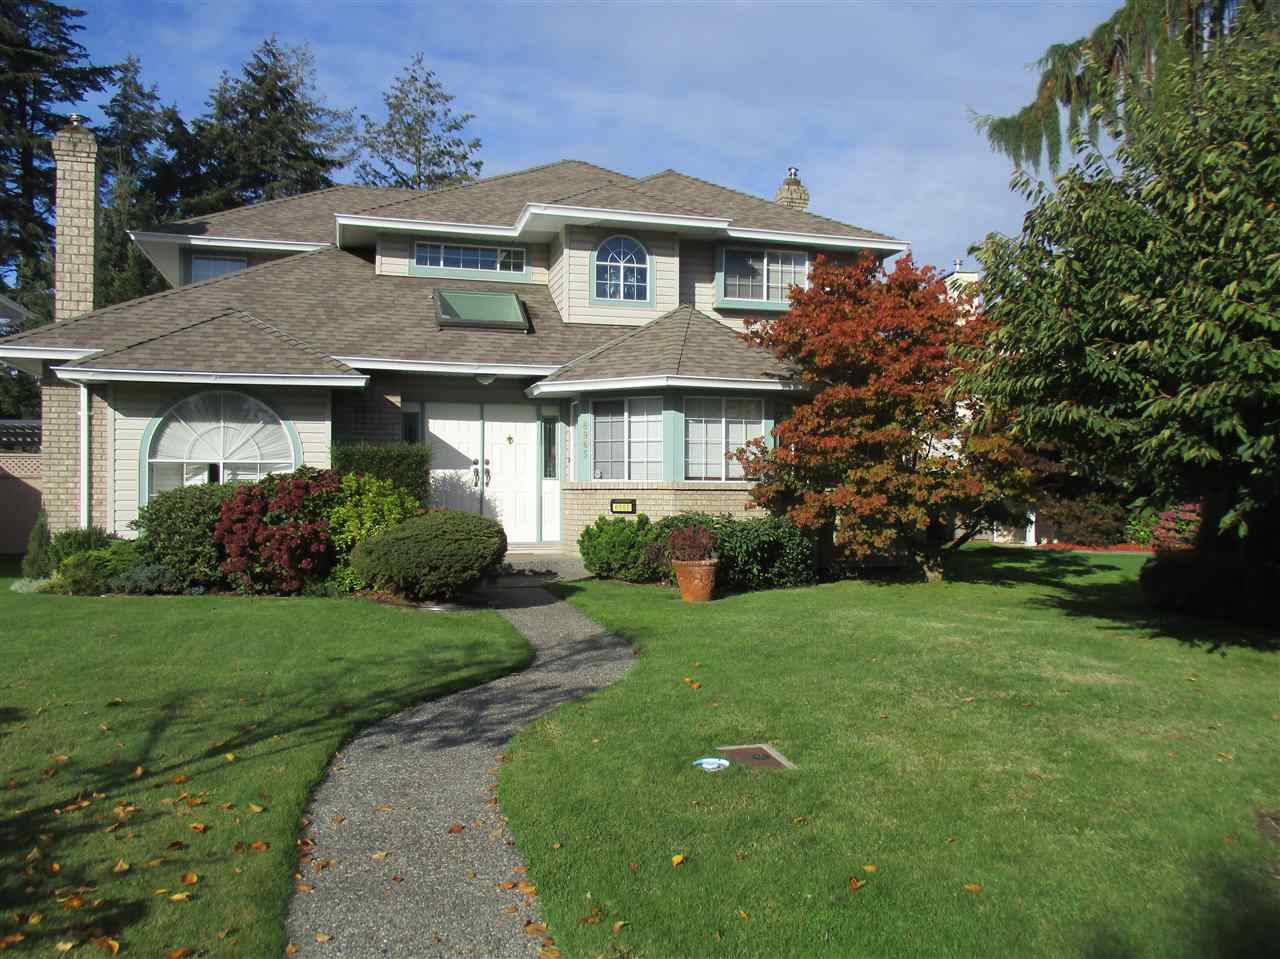 """Main Photo: 6965 128A Street in Surrey: West Newton House for sale in """"West Newton"""" : MLS®# R2240094"""